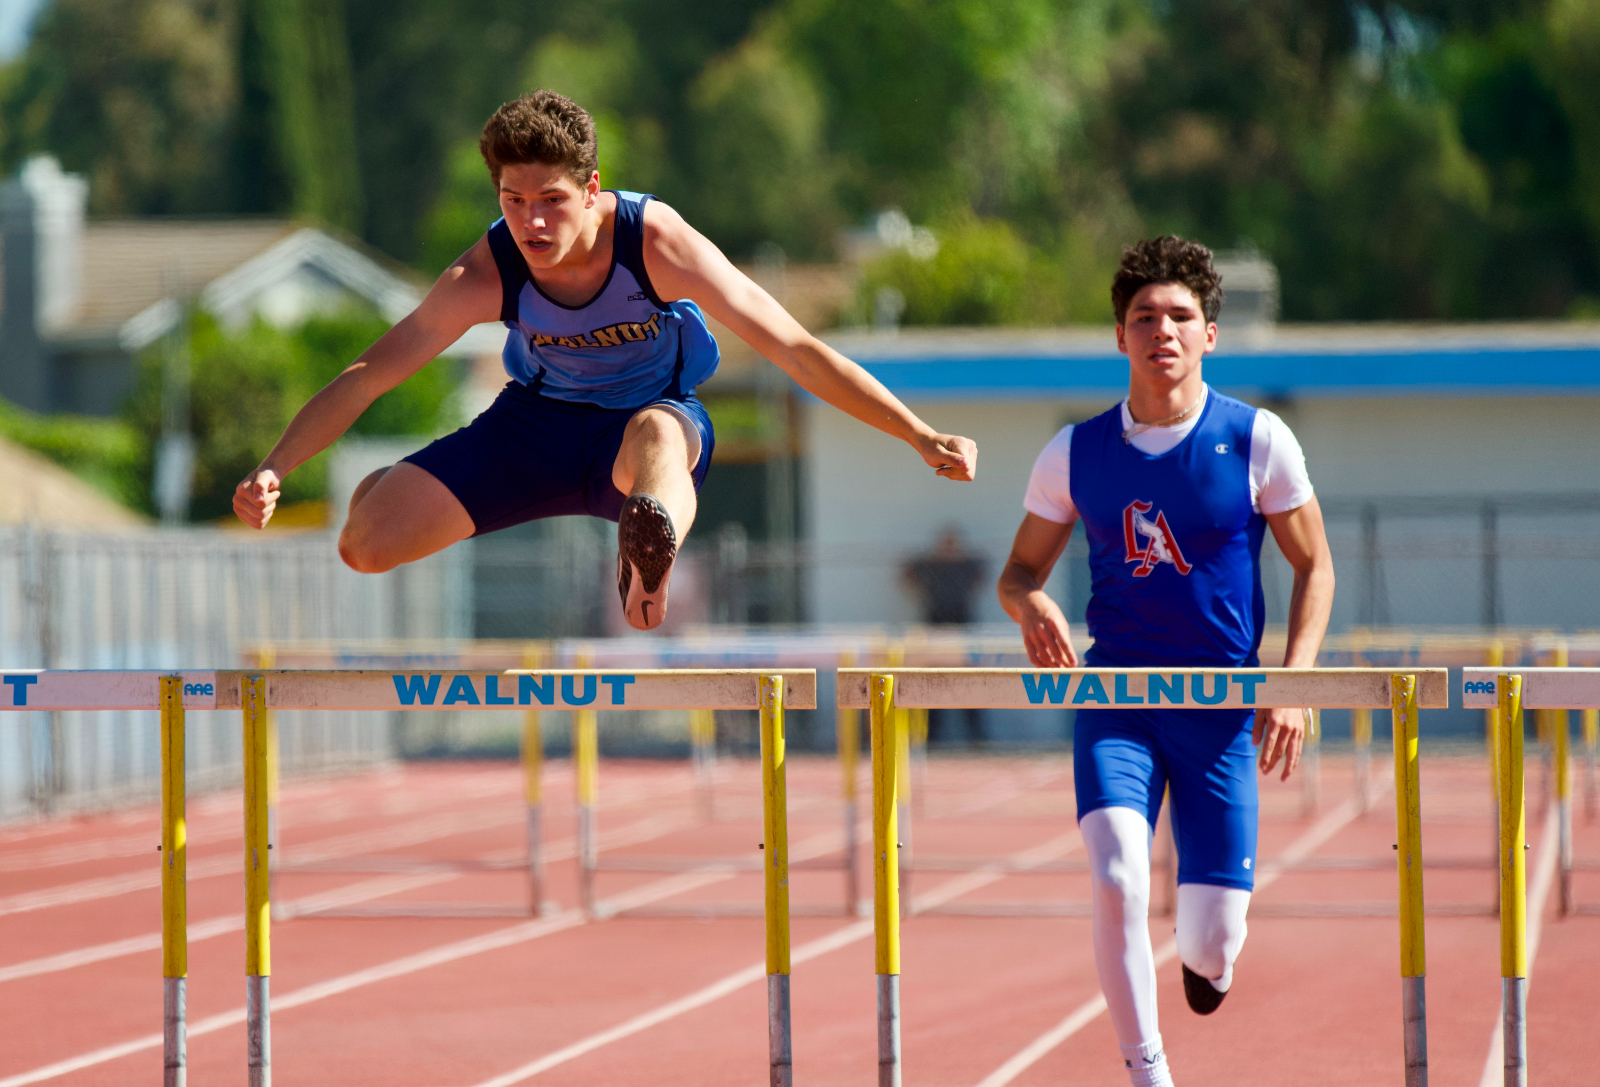 Track and Field April 29, 2021